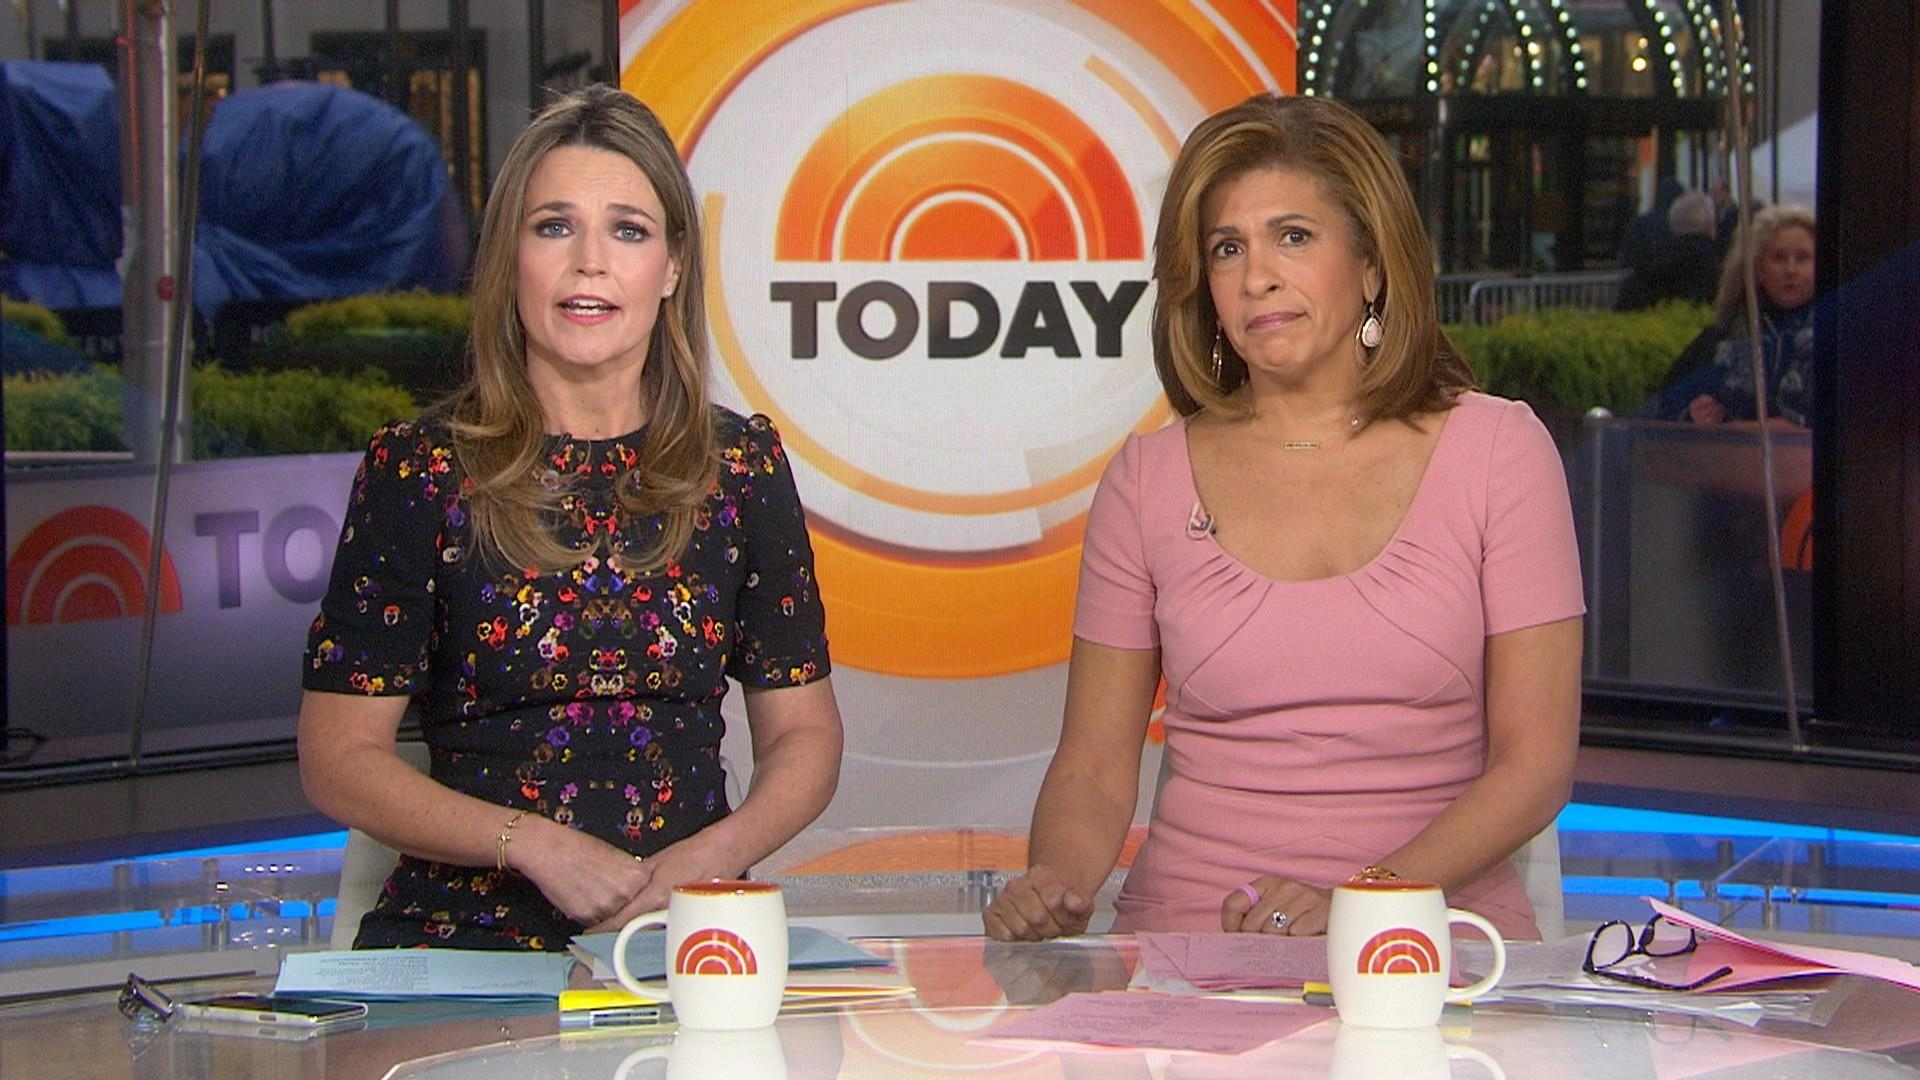 'Today' Co-Host 'So So Sad' About Tragic Story Making National Headlines